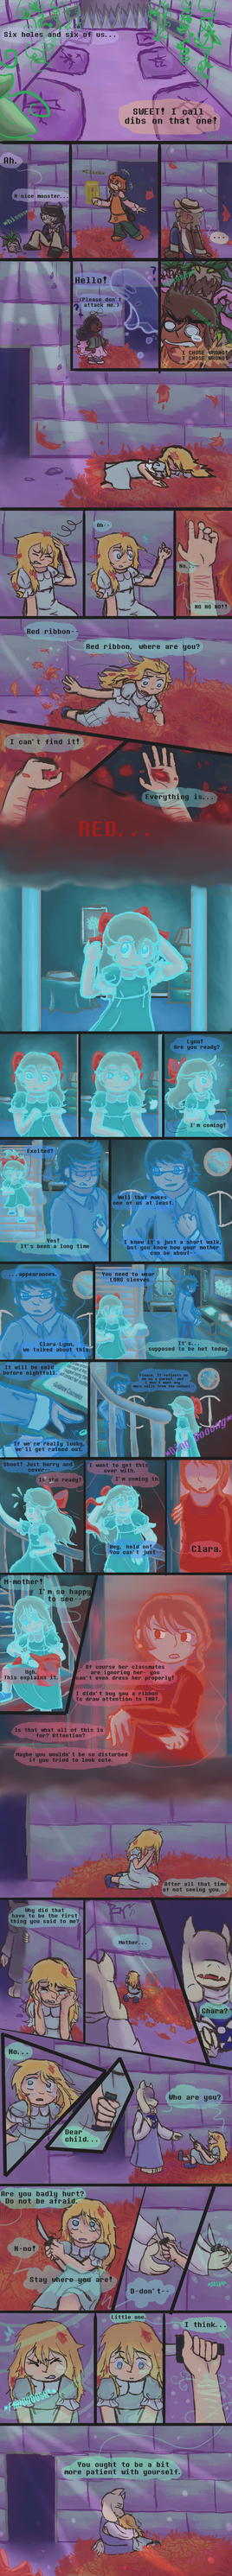 TSWFBY- page 7 by Passionrising